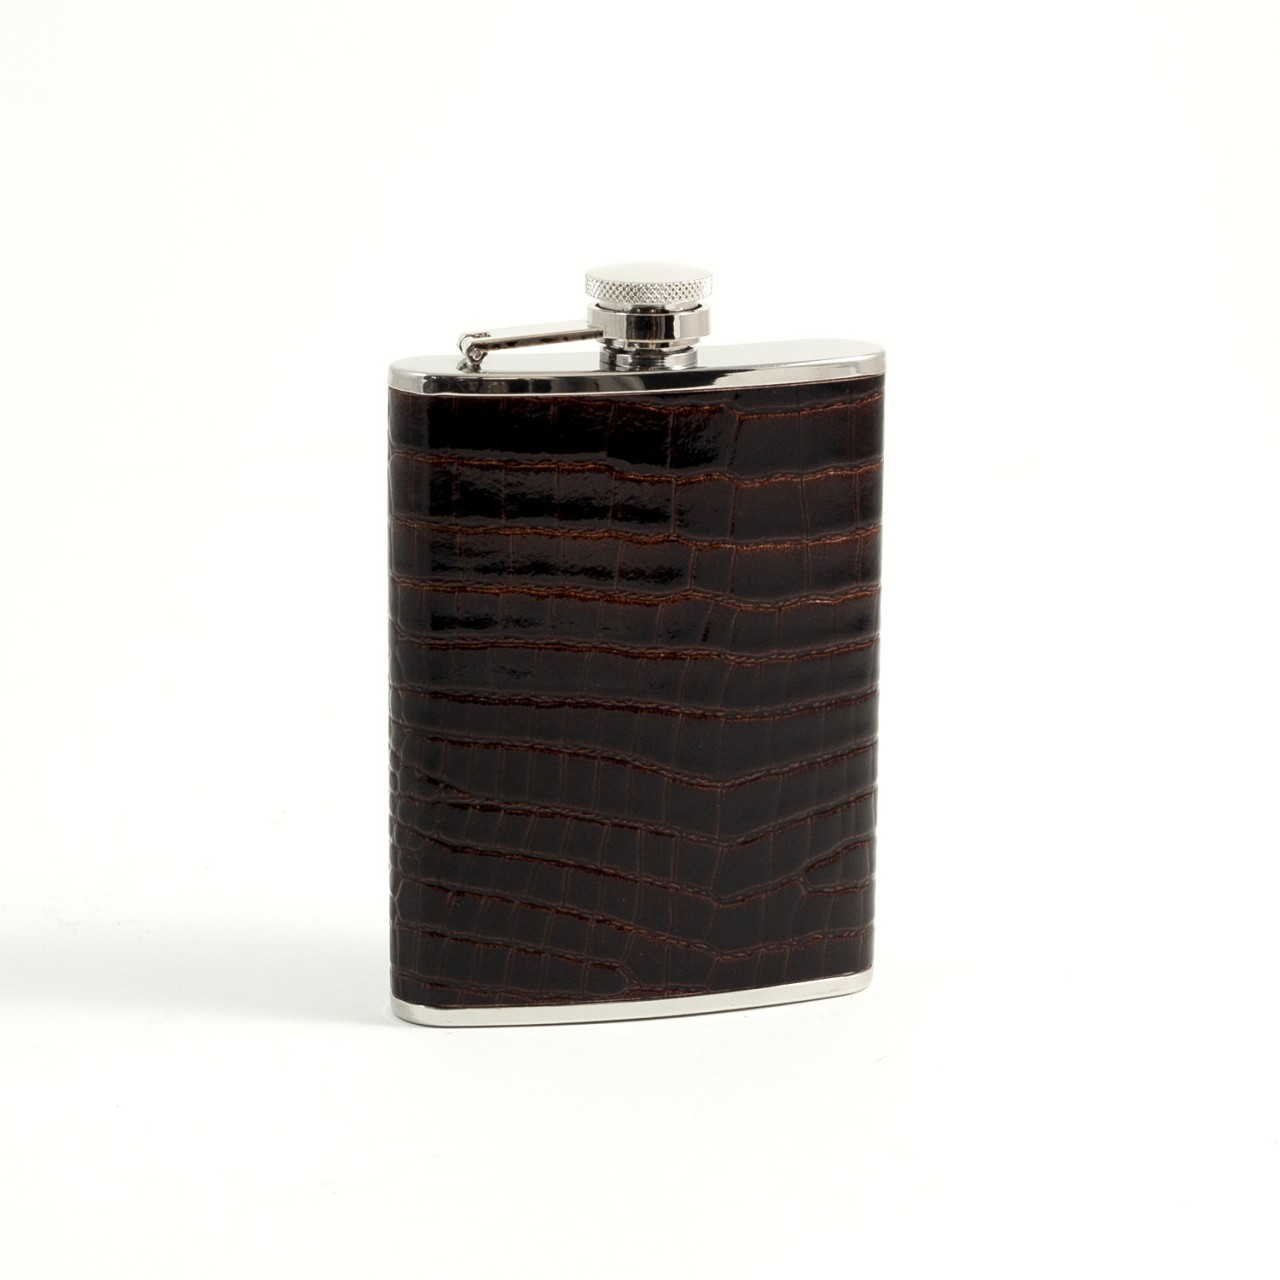 Stainless Steel Flask - Brown Croco Leather